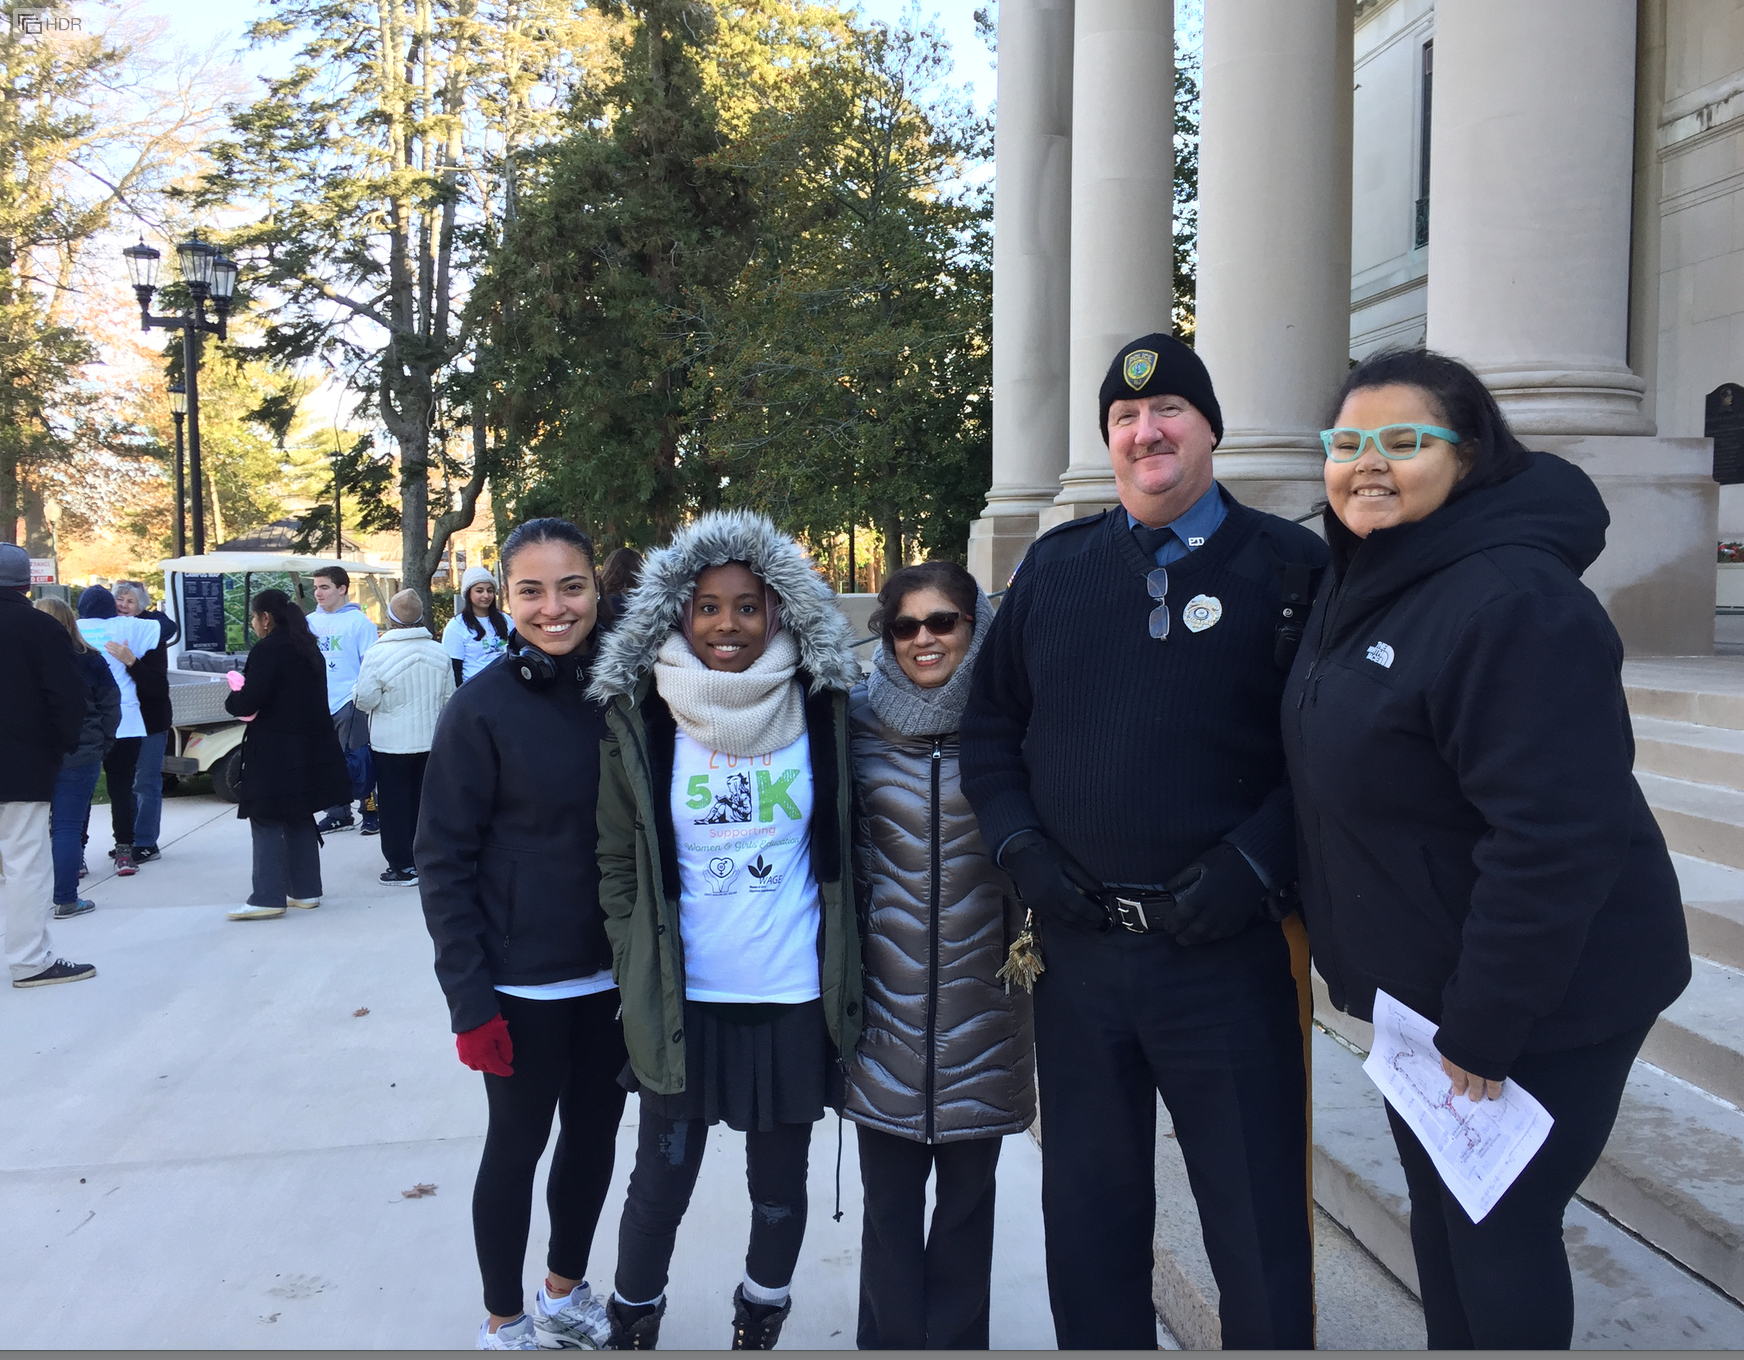 December 4, 2016. SAGE organized a 5K walk-run to benefit girls' education at Monmouth University, West Long Branch, New Jersey.